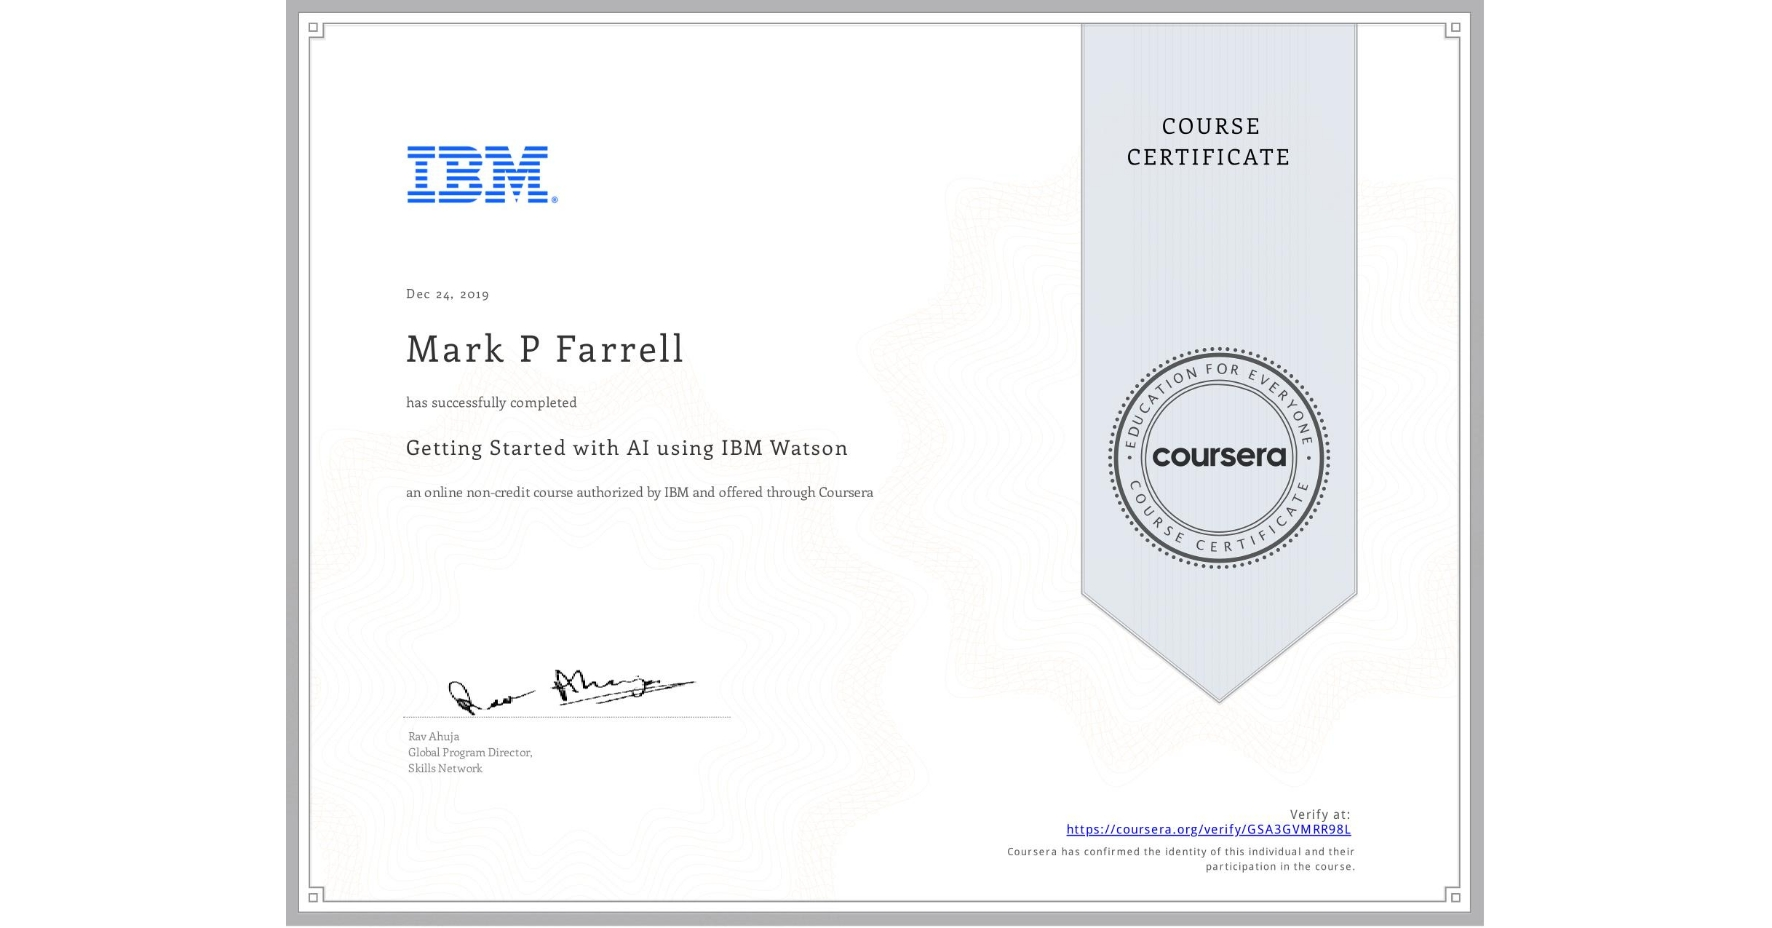 View certificate for Mark Farrell, Getting Started with AI using IBM Watson, an online non-credit course authorized by IBM and offered through Coursera